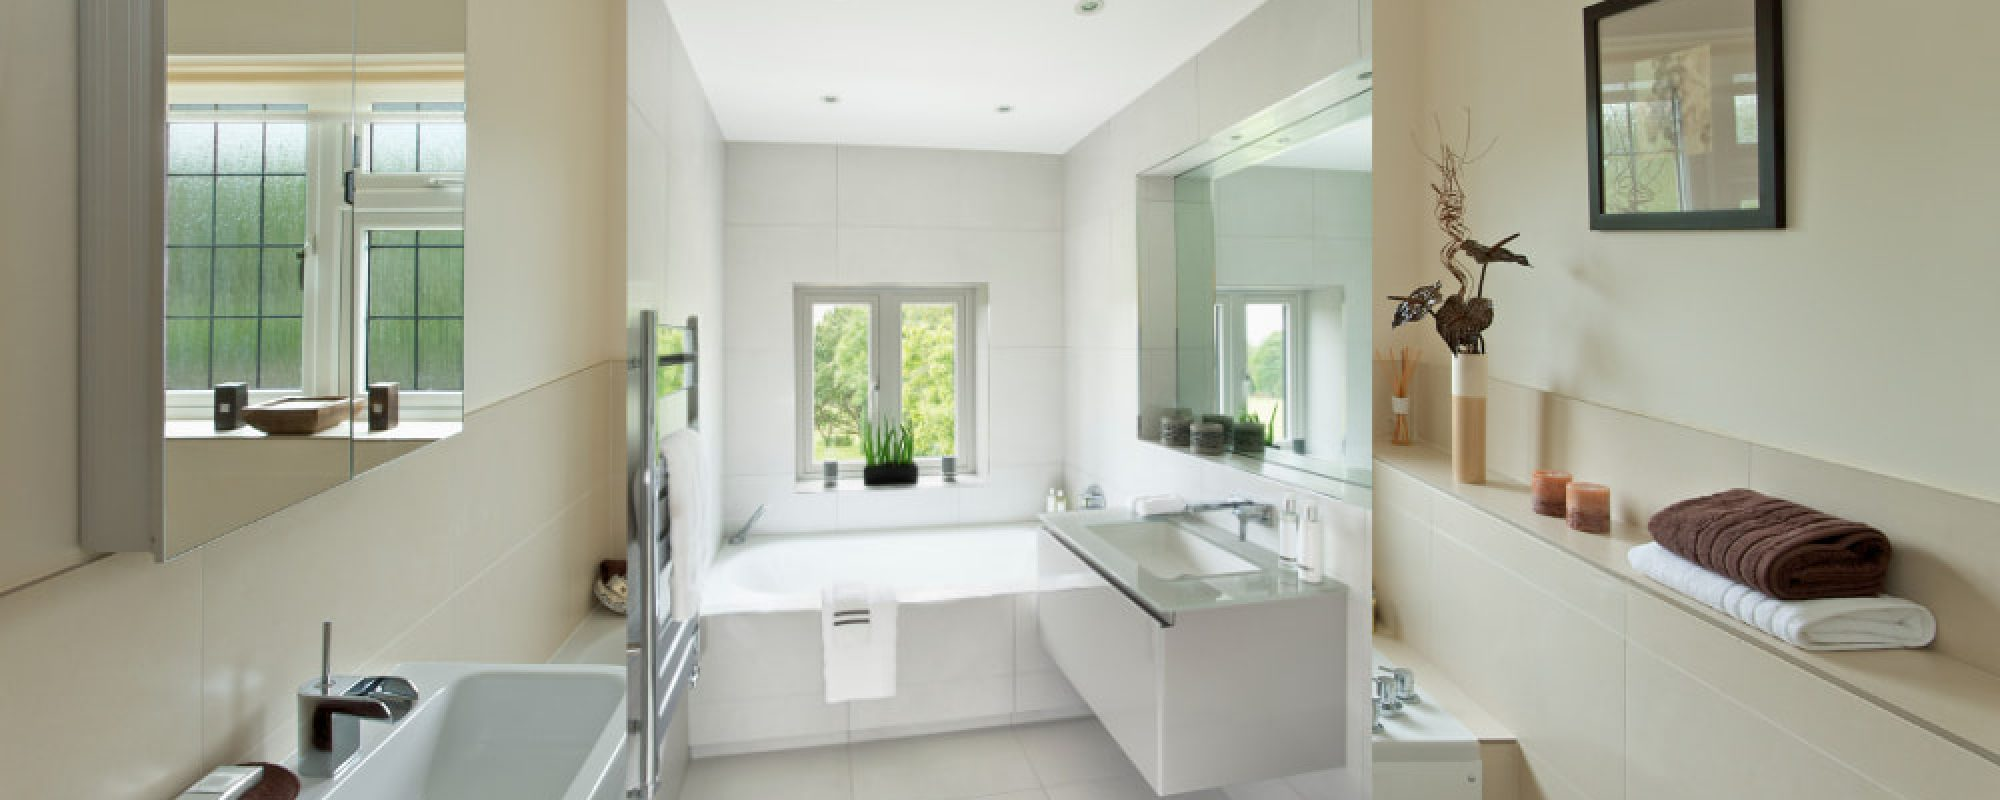 Guest bathroom ideas of clients